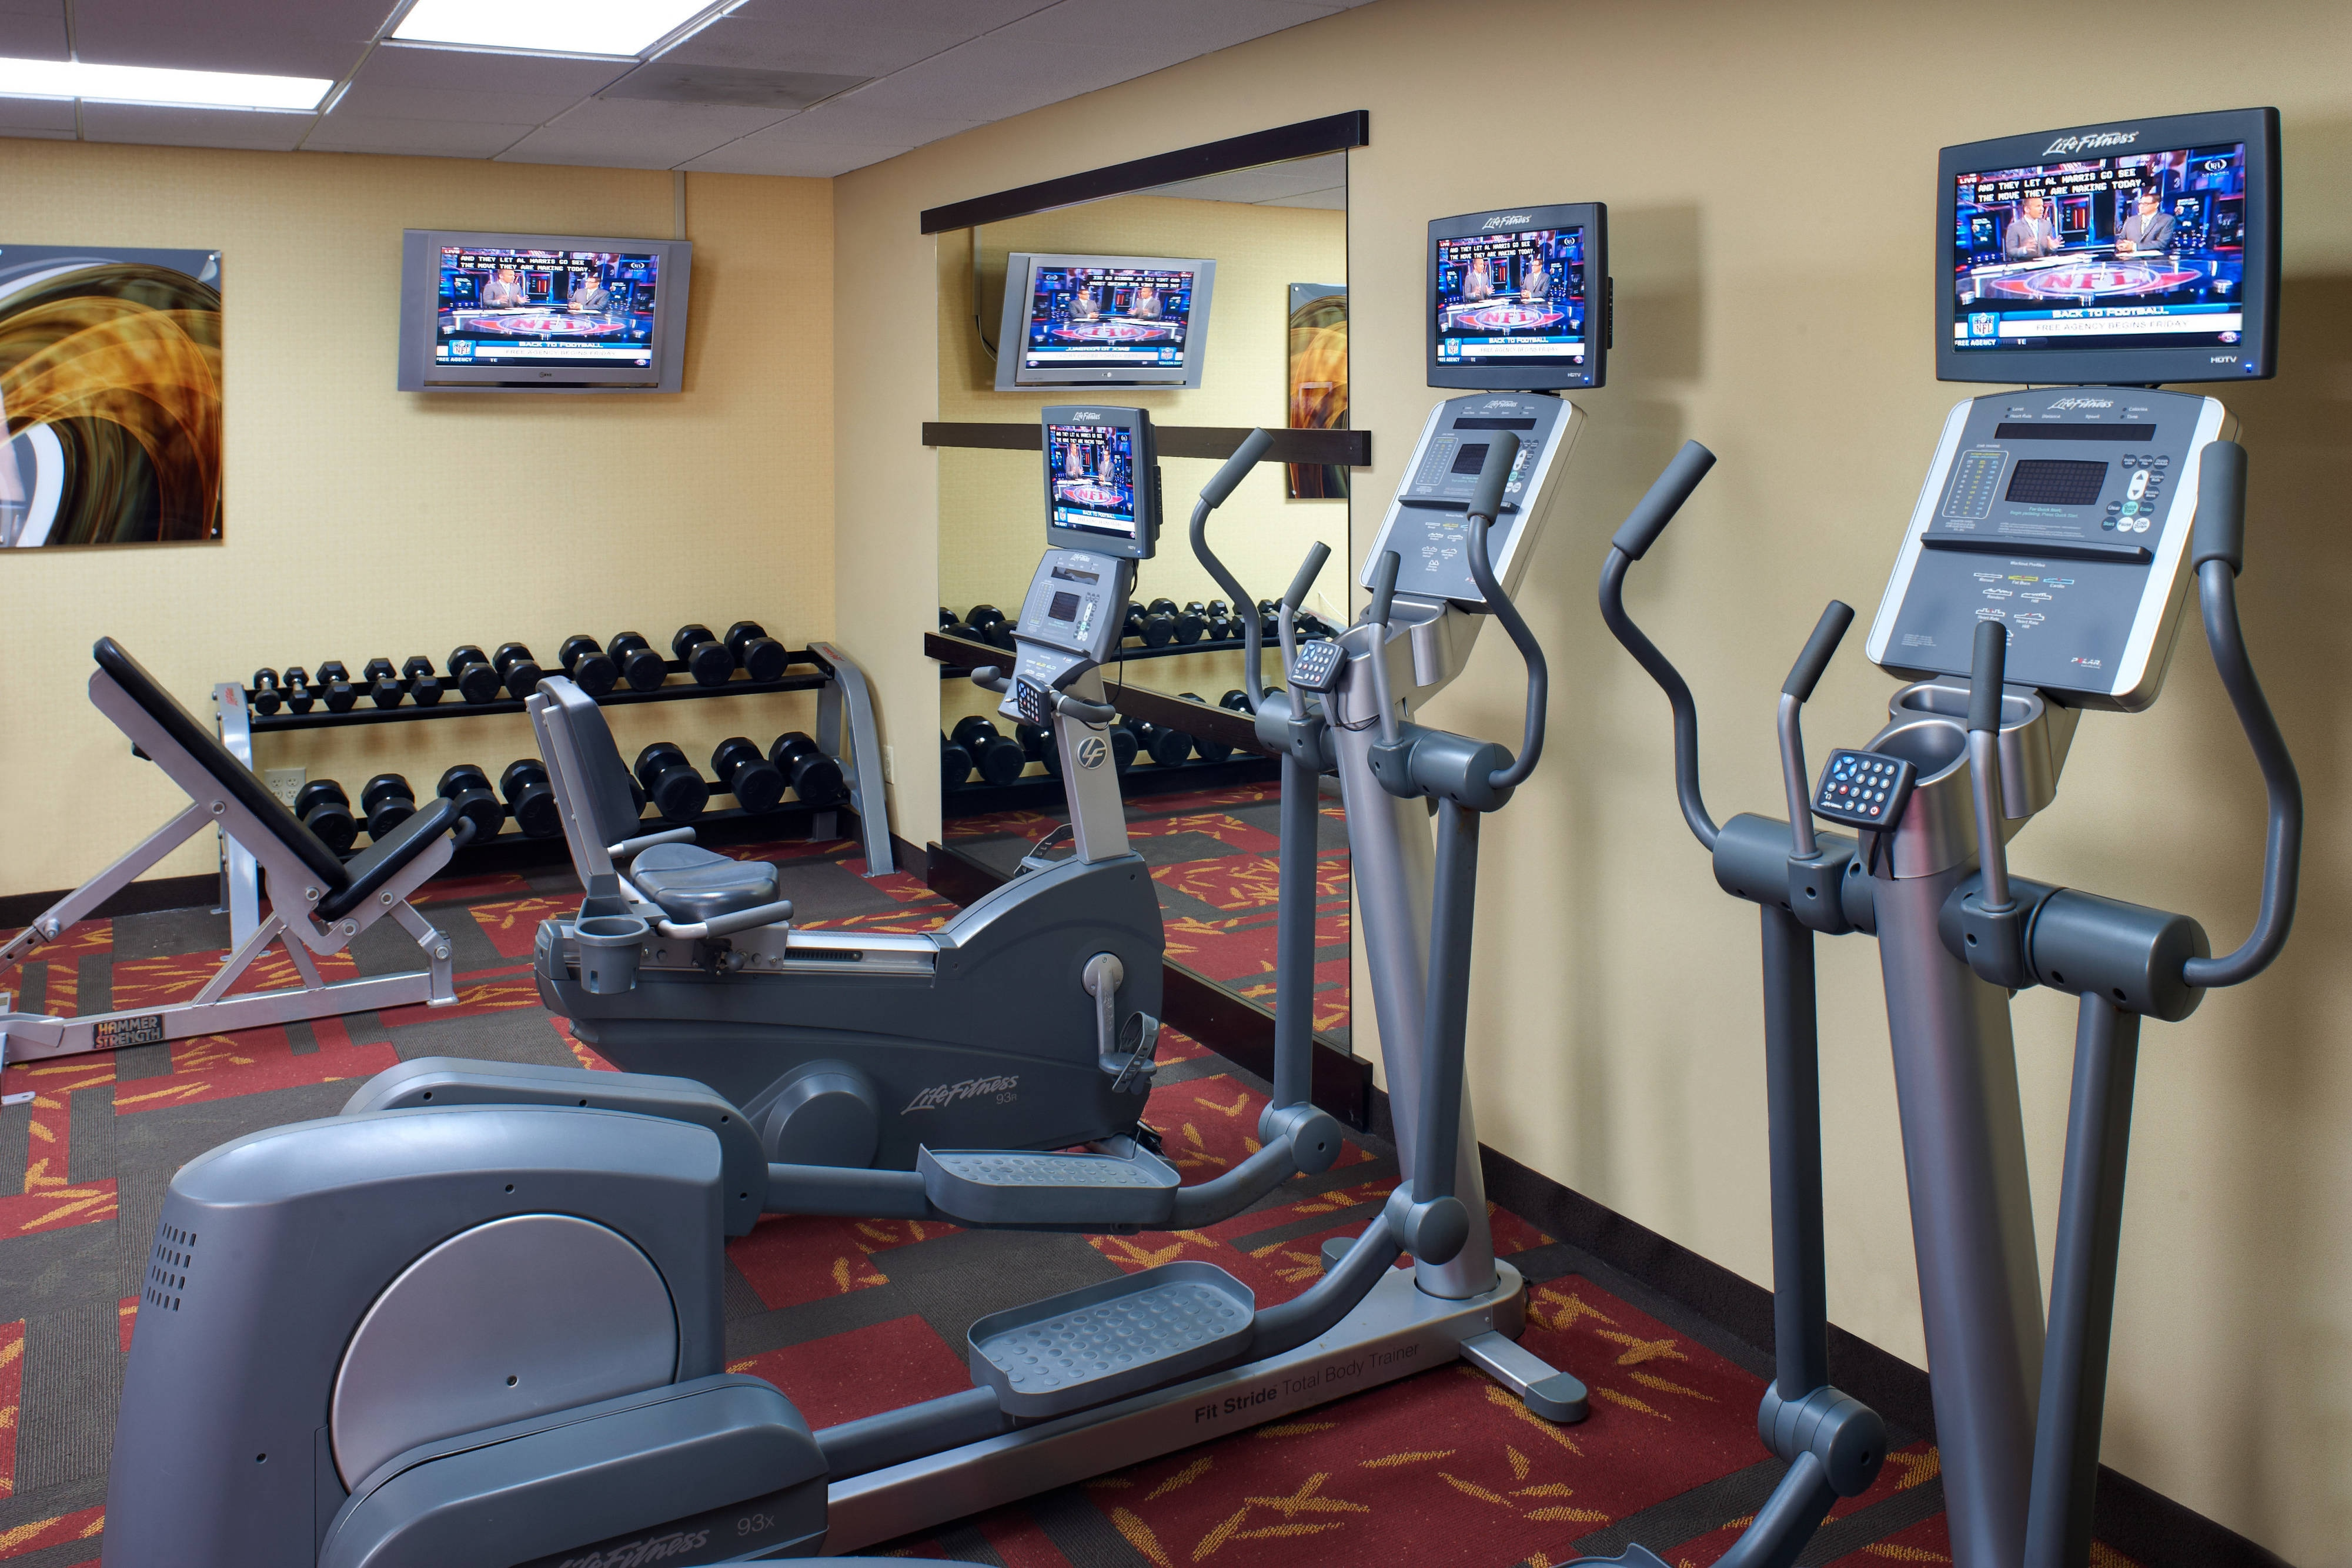 Courtyard St. Louis Creve Coeur Fitness Center